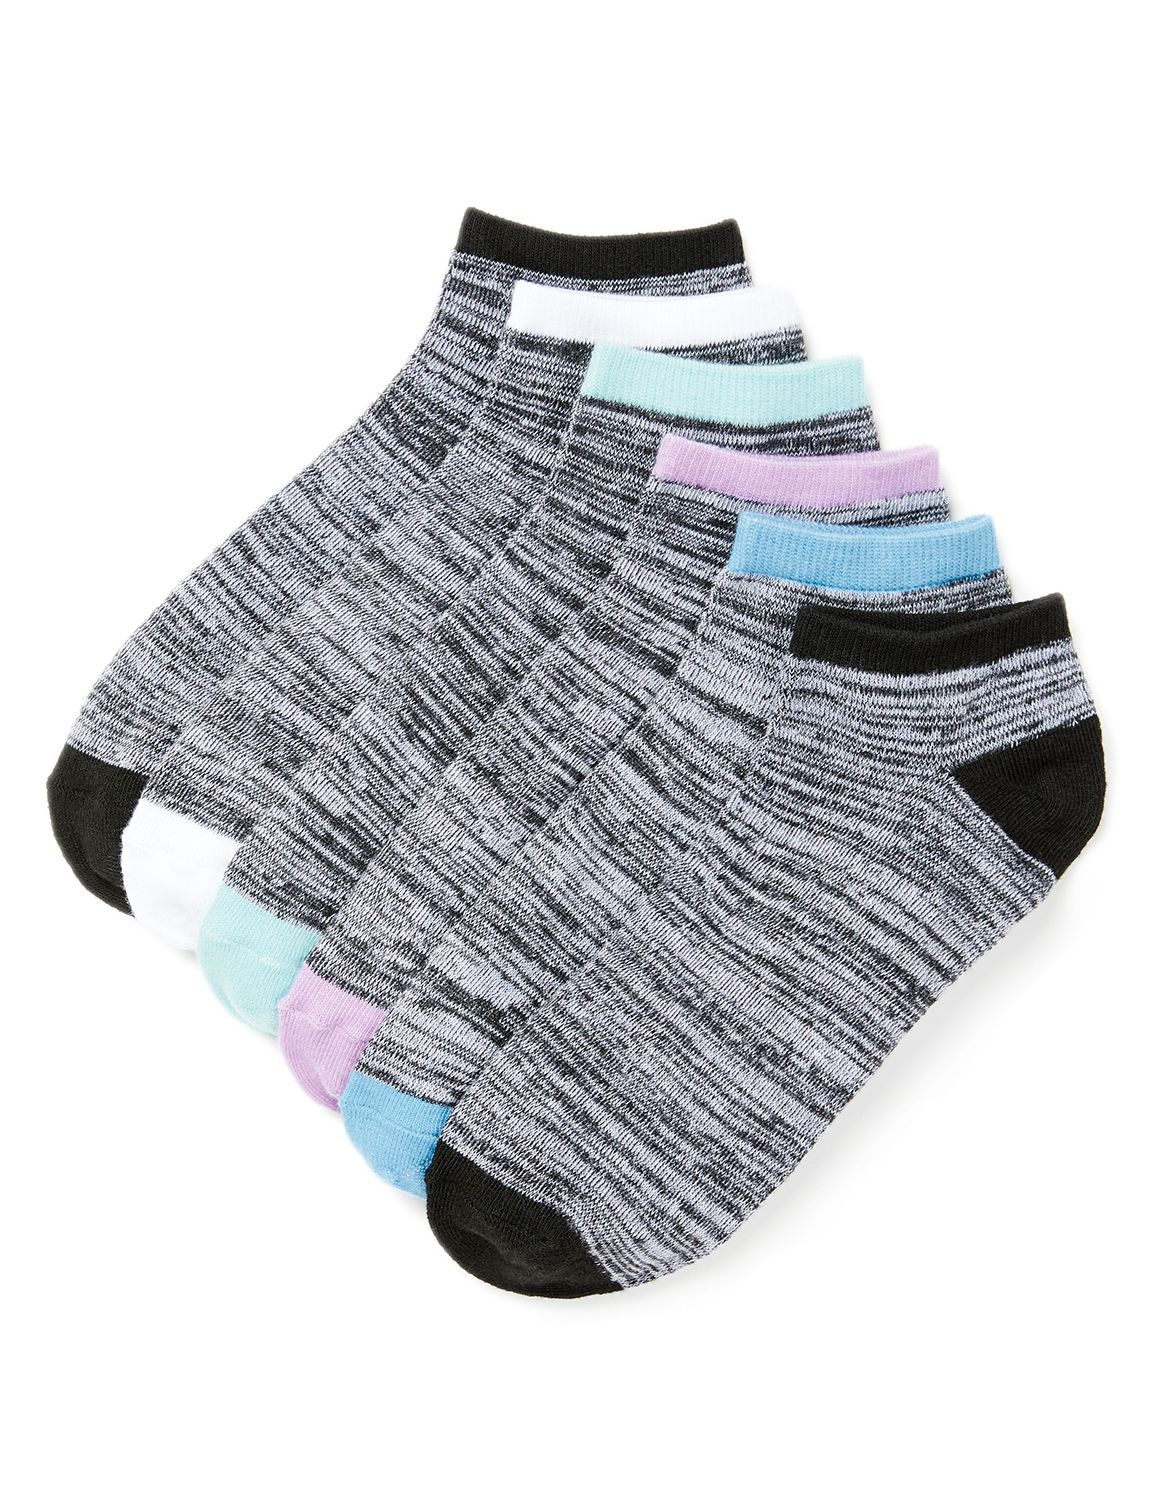 Pastel Pop 6-Pack Socks Act 6pk lw ct basic pastels MP-300094402